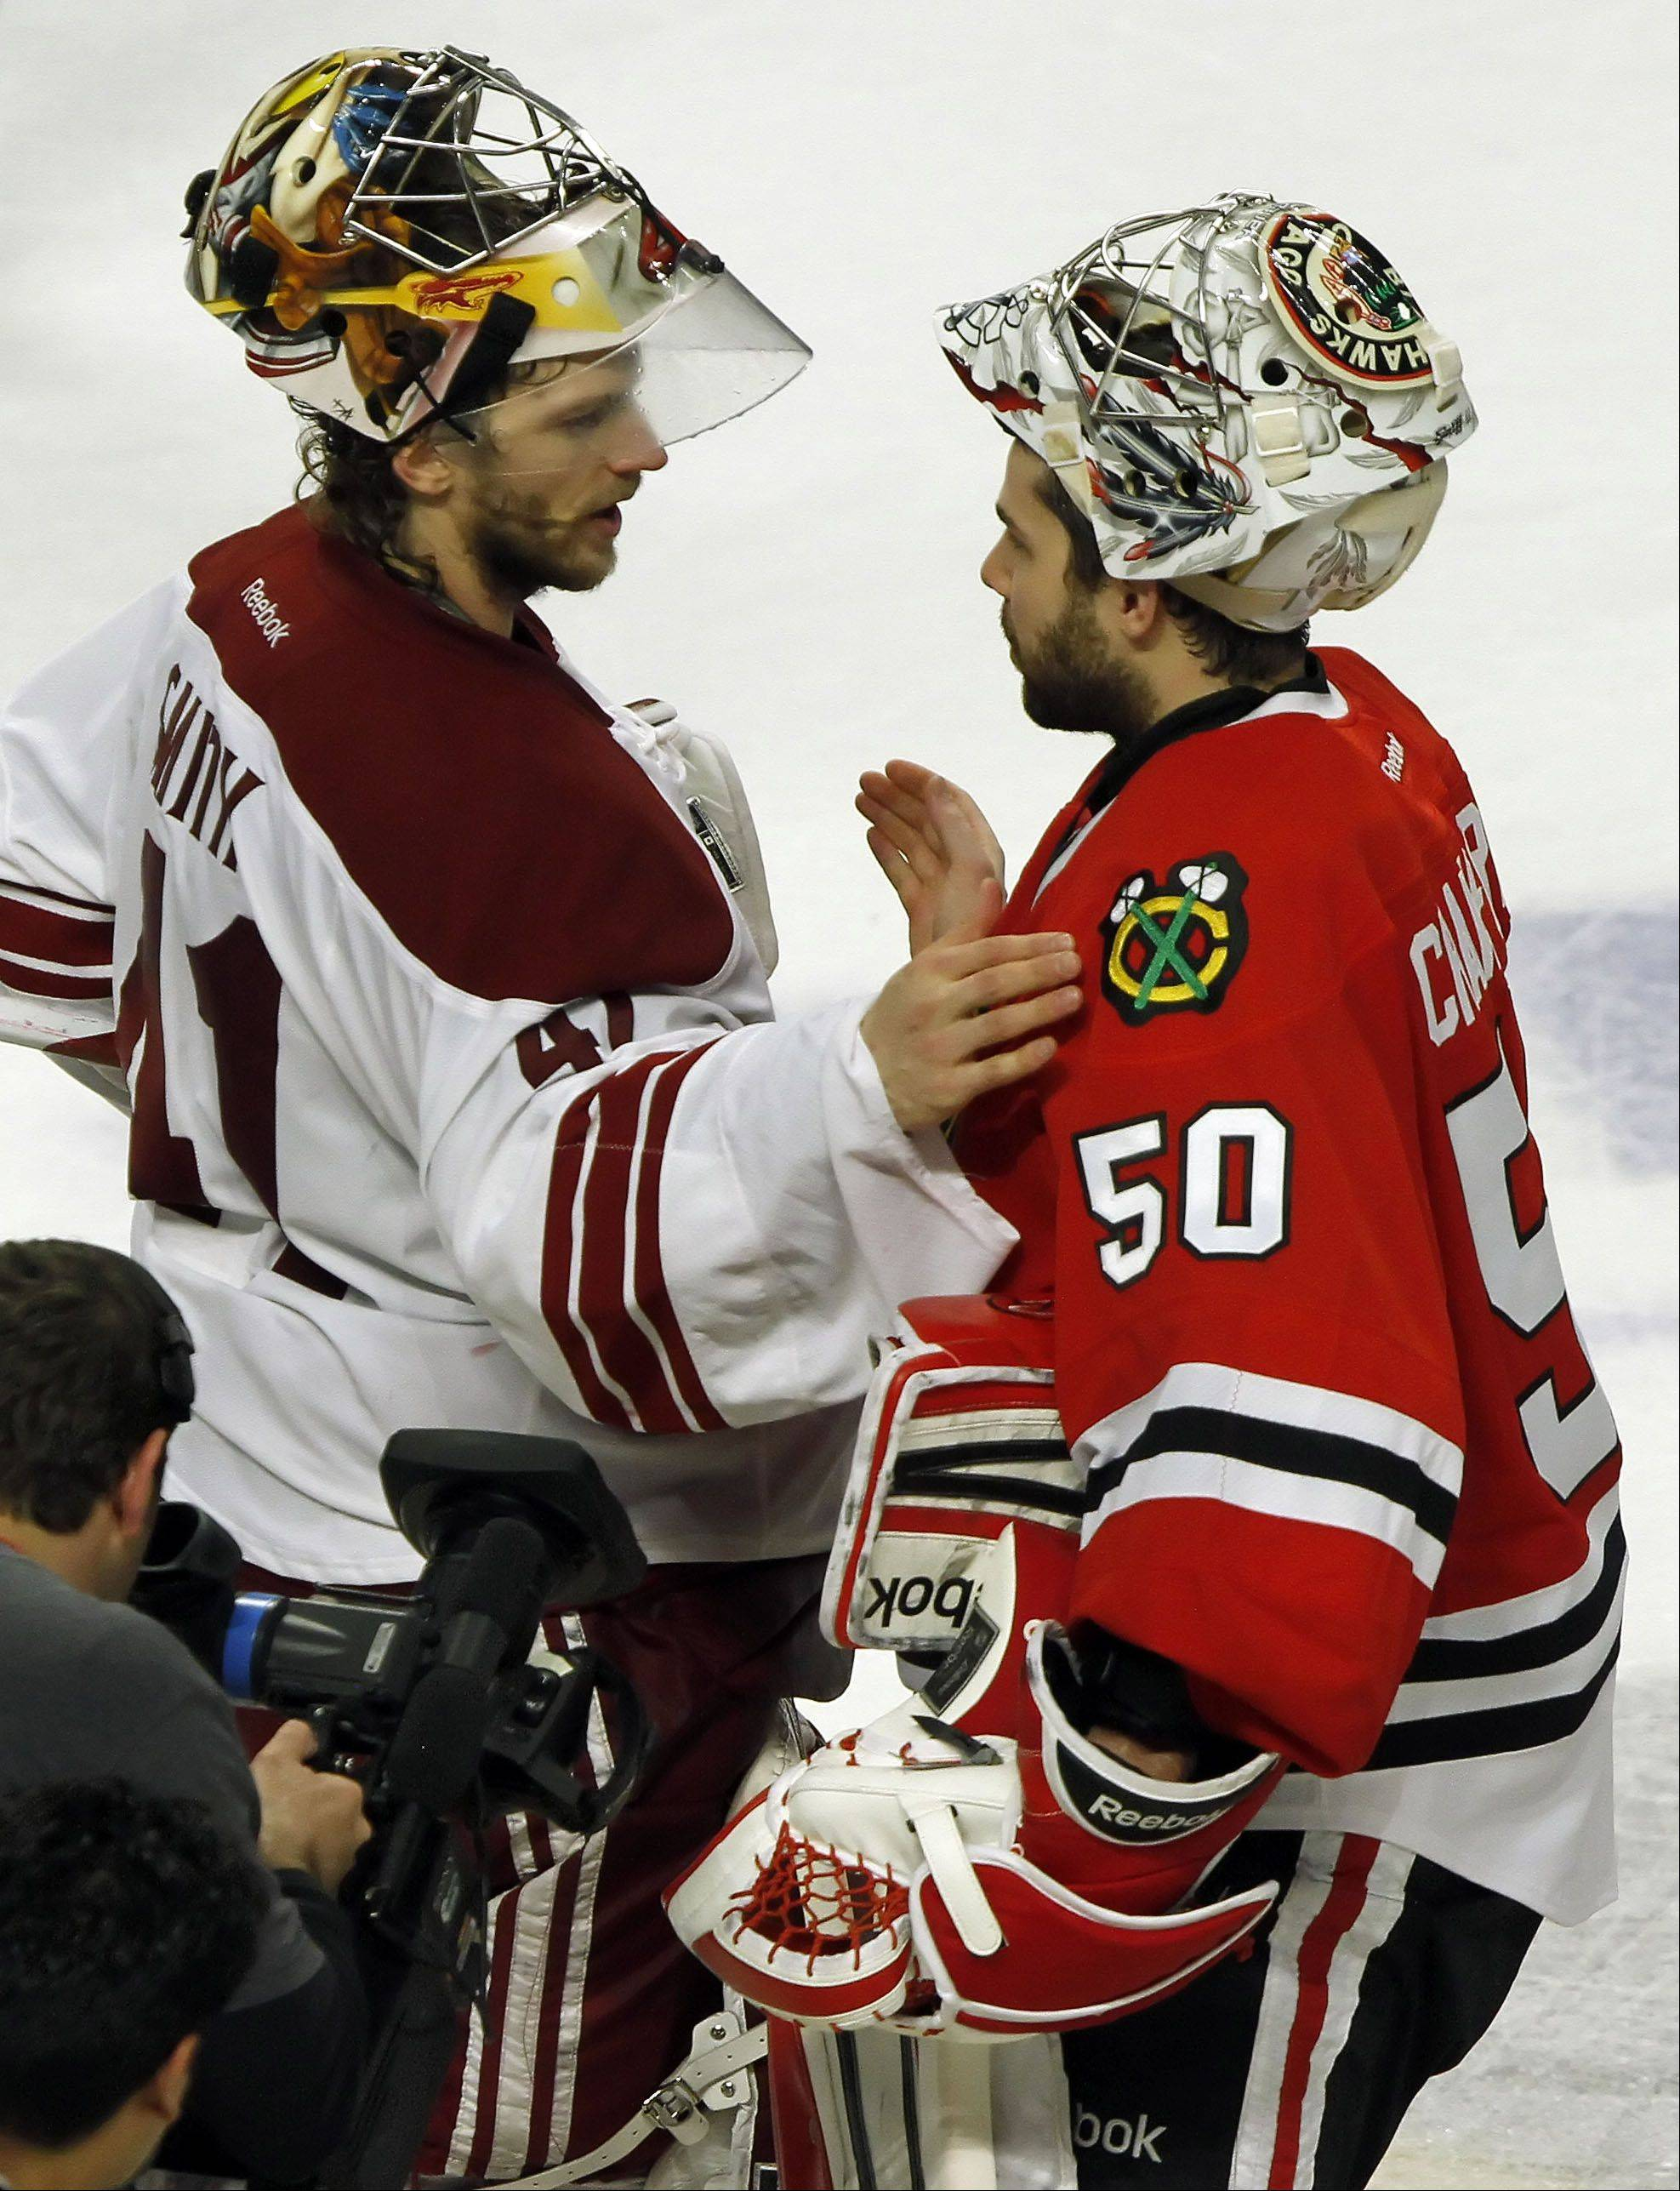 Phoenix Coyotes' goalie Mike Smith and Chicago Blackhawks' goalie Corey Crawford meet at center ice after the game.